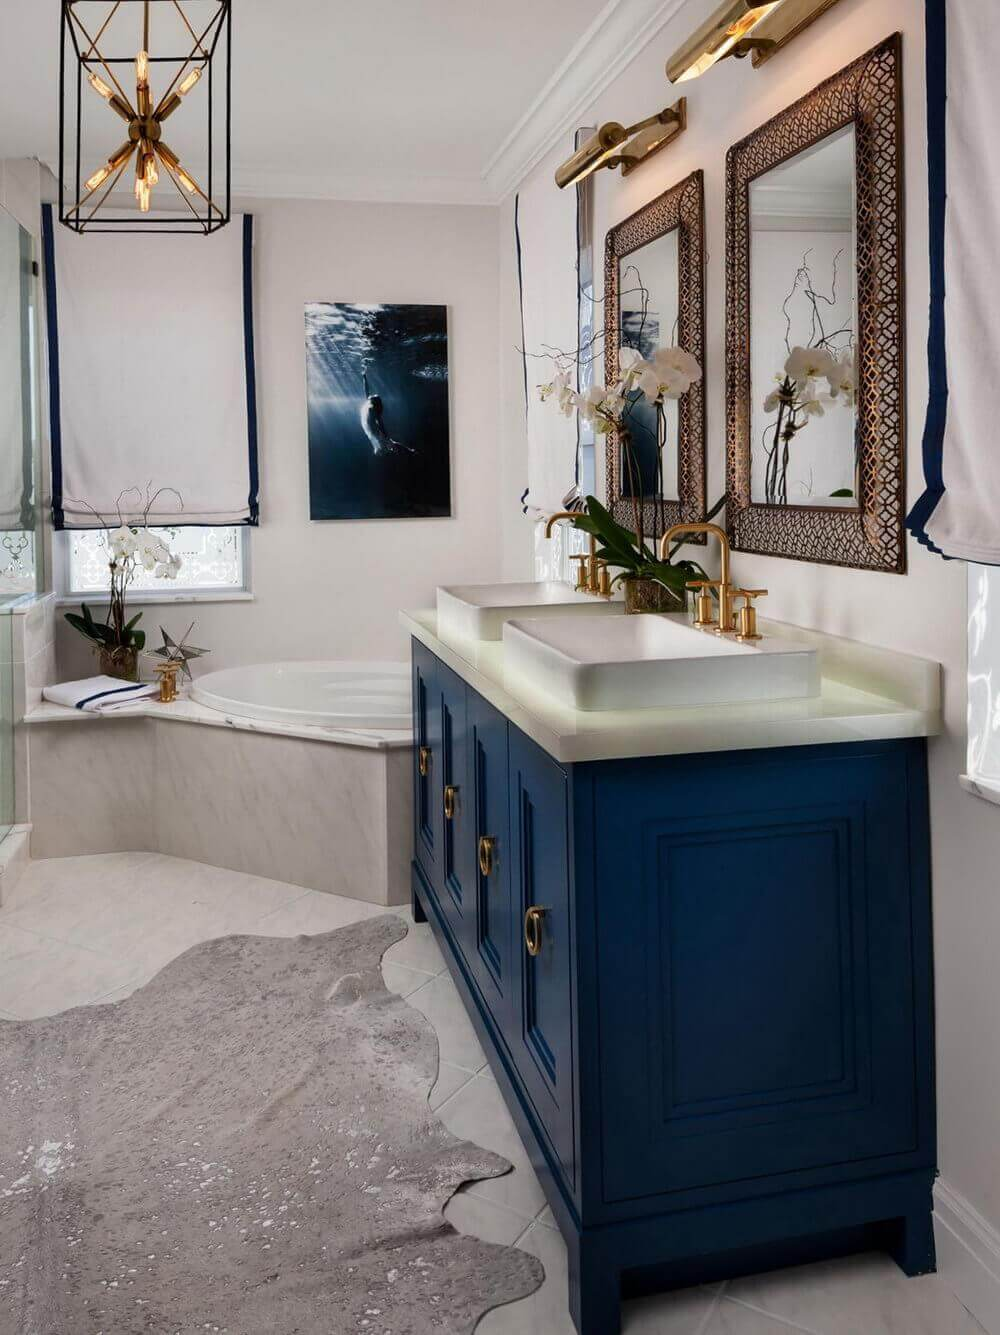 30 Most Navy Blue Bathroom Vanities You Shouldn't Miss ...